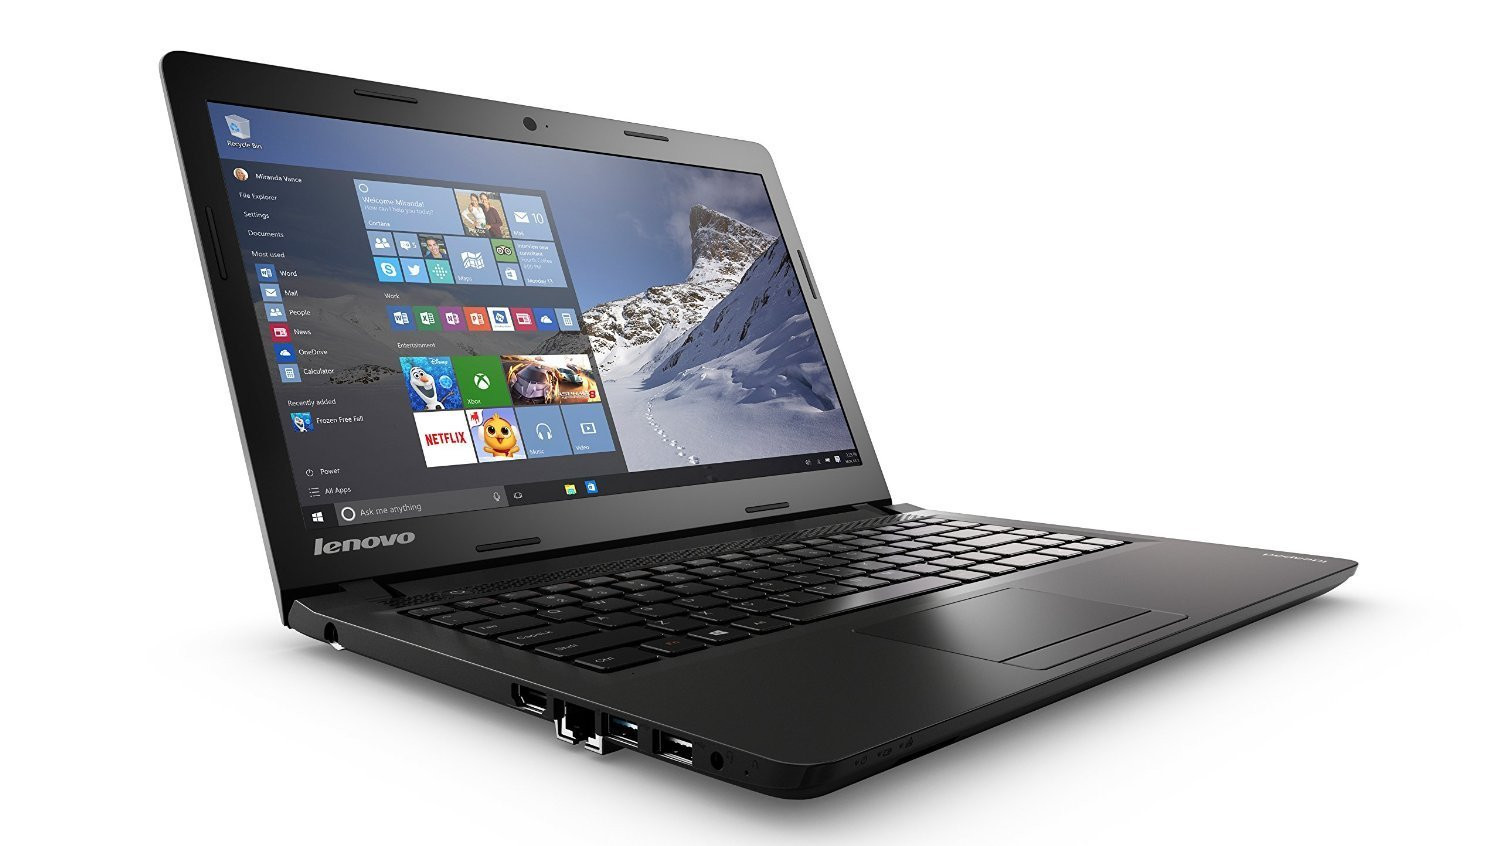 LAPTOP LENOVO THINKPAD T460S - 20FA0013VA